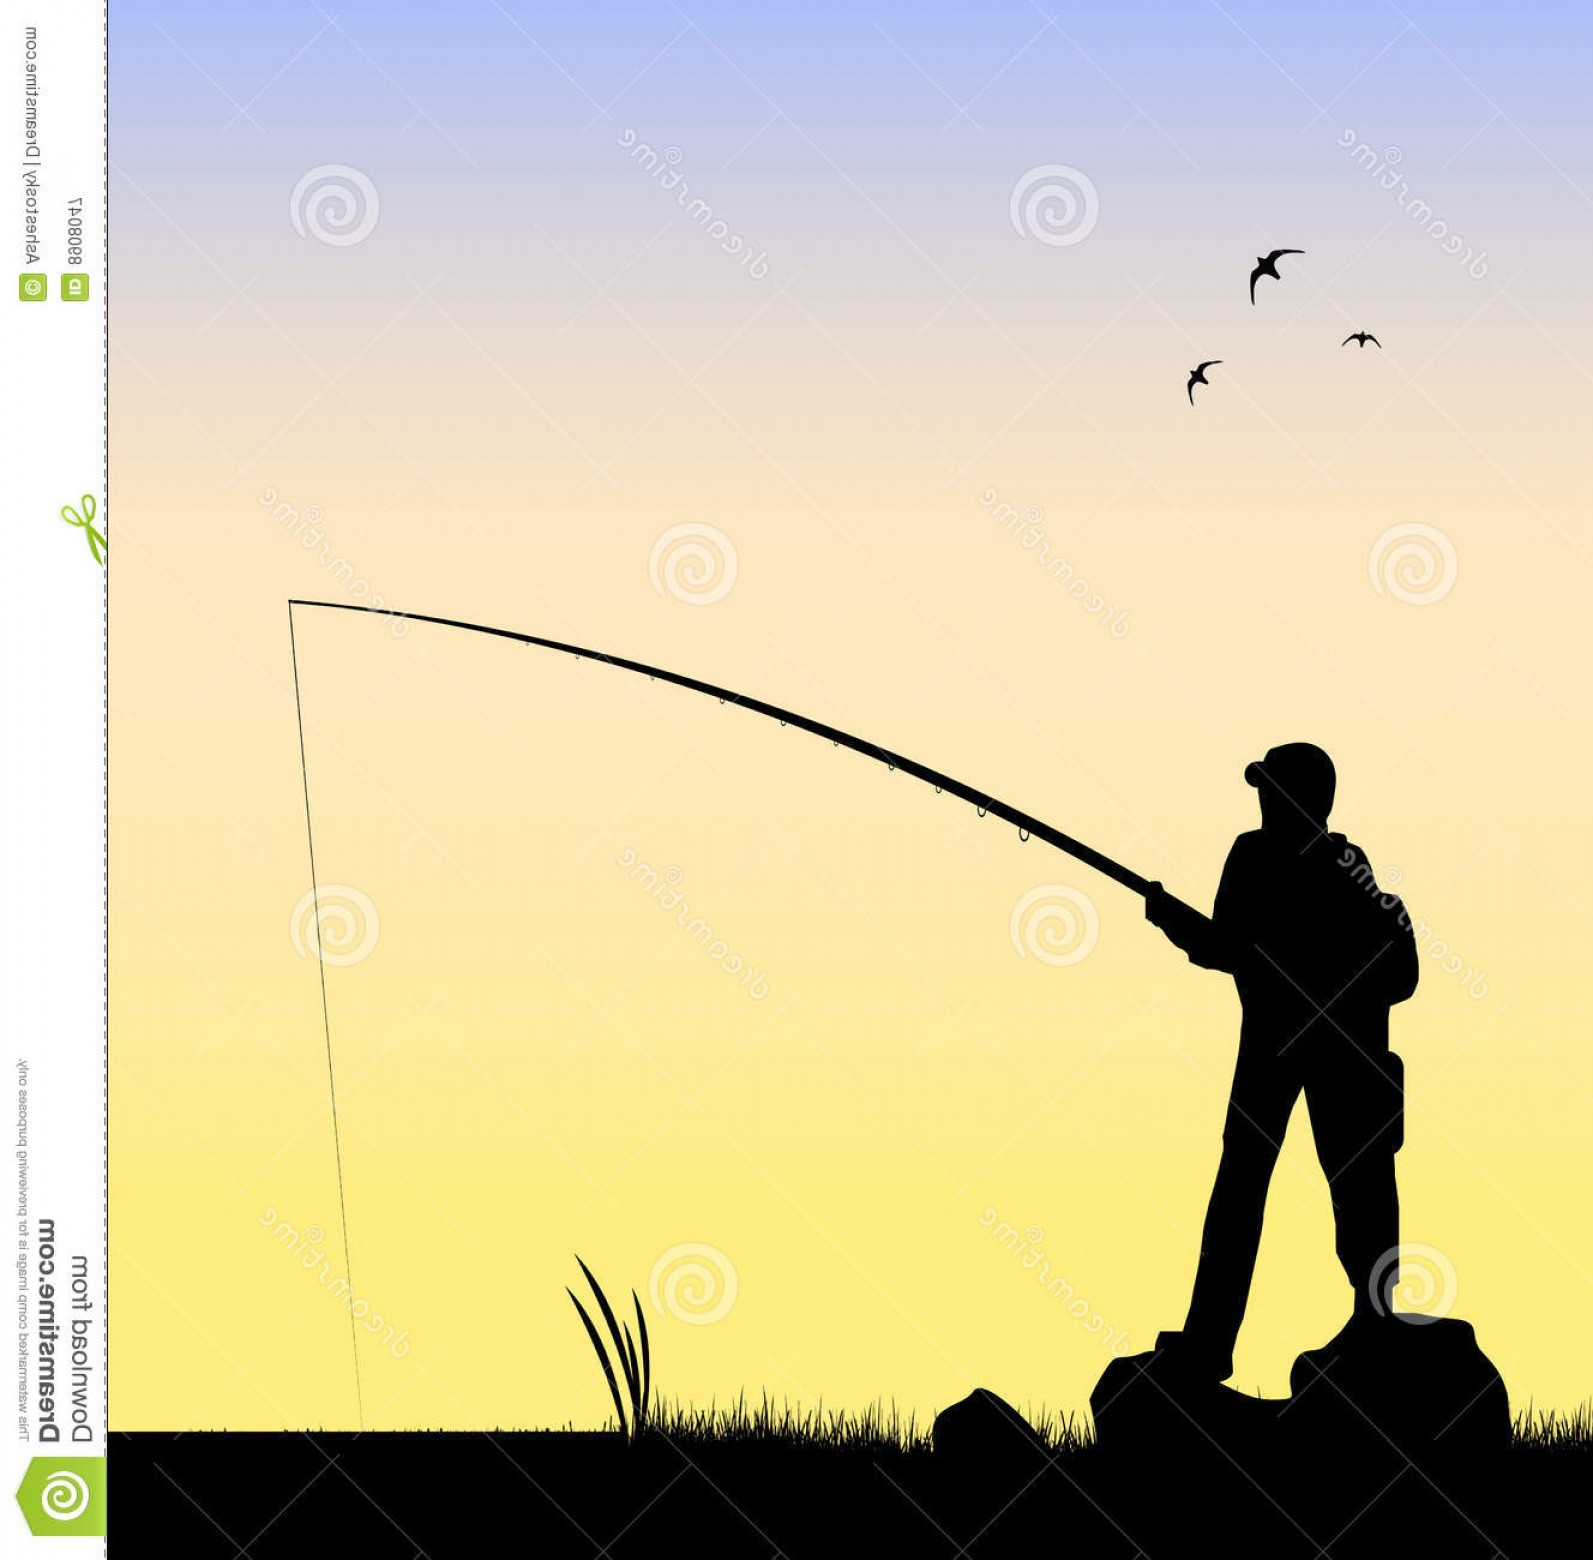 River Silhouette Vector Art: Royalty Free Stock Photography Fisherman Fishing River Vector Image